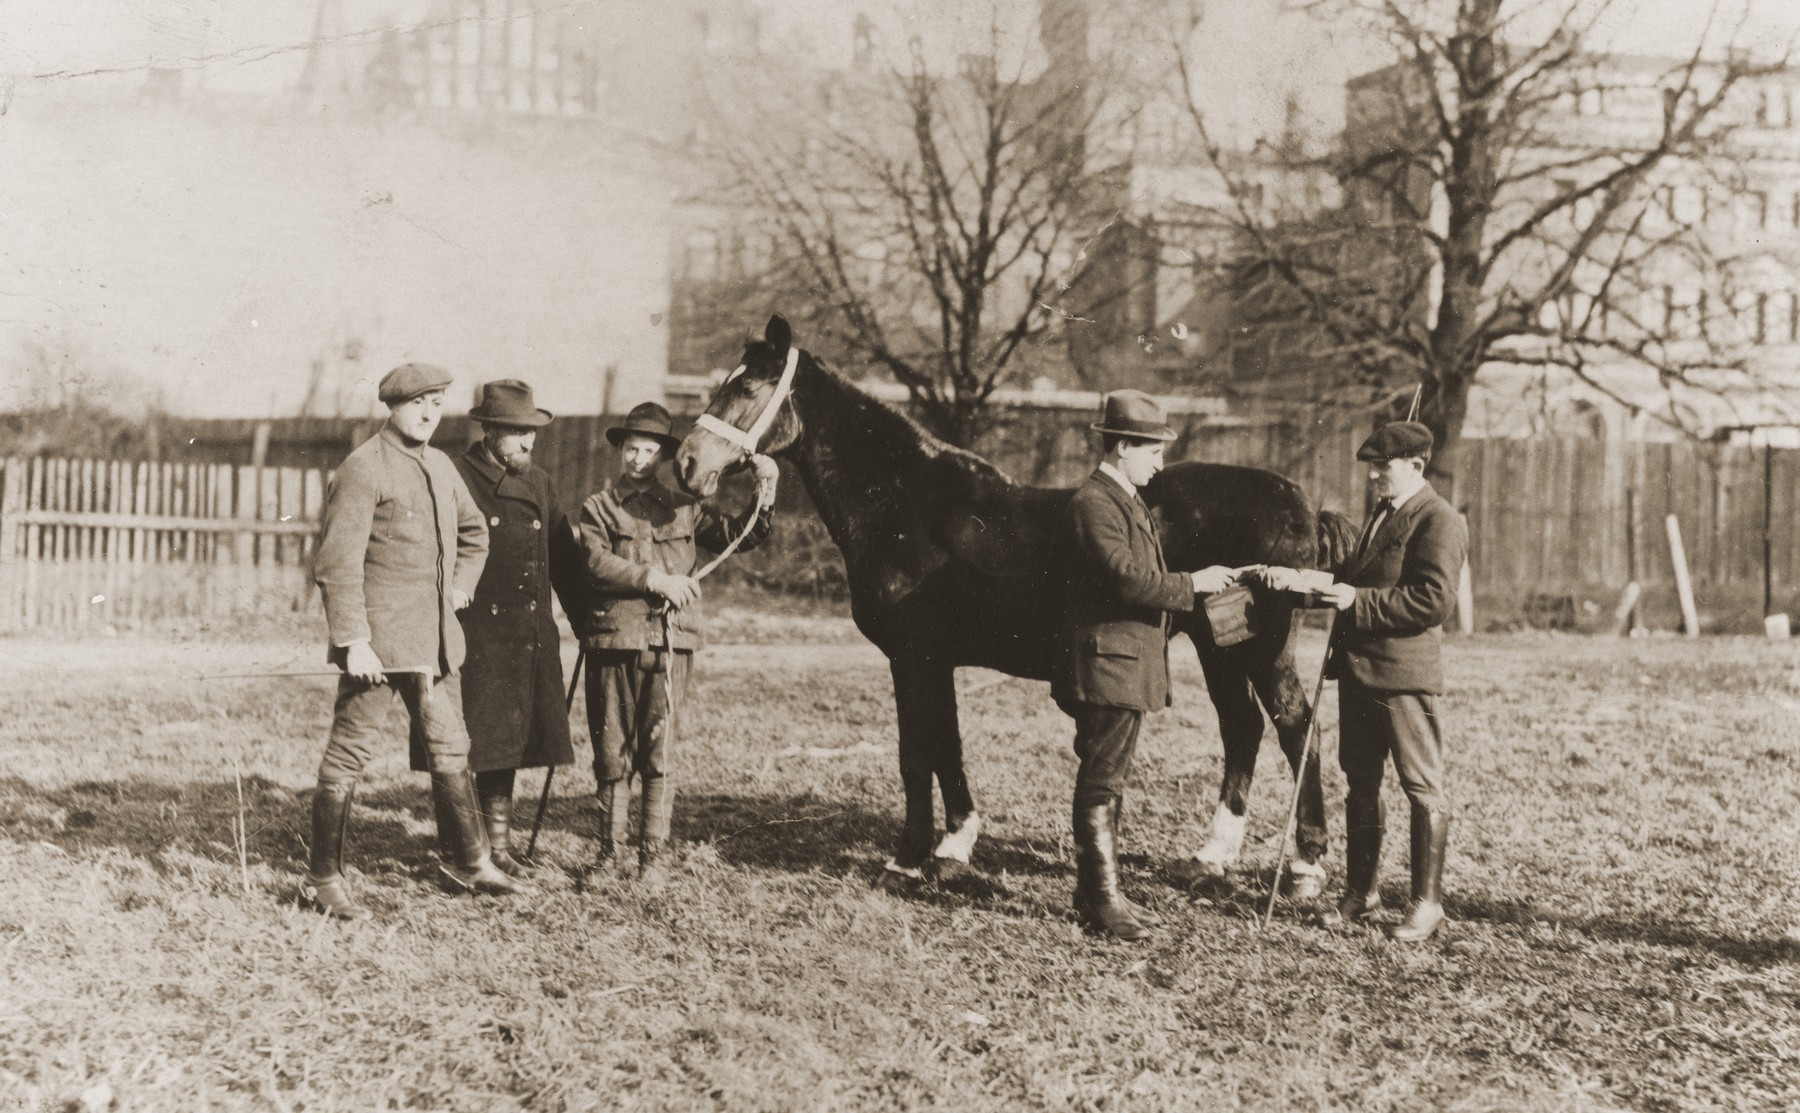 Berl Broda (second from the left) with his sons Aaron and Zalman sell horses at a horse-trading fair in Breslau.